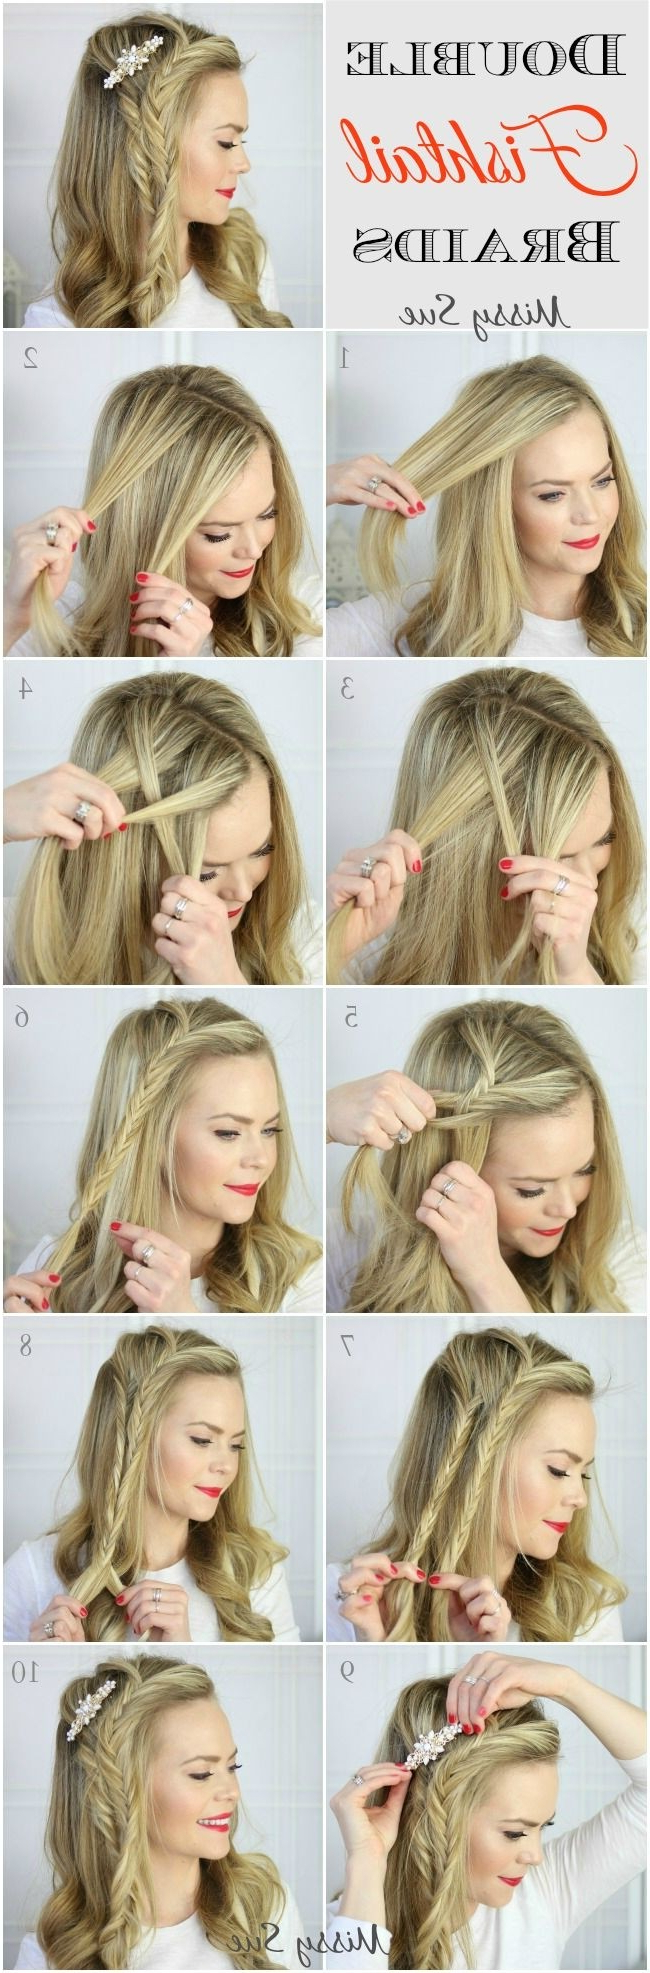 12 Amazing French Braid Hairstyles Tutorials – Pretty Designs For Trendy Fishtail Side Braid Hairstyles (View 20 of 20)